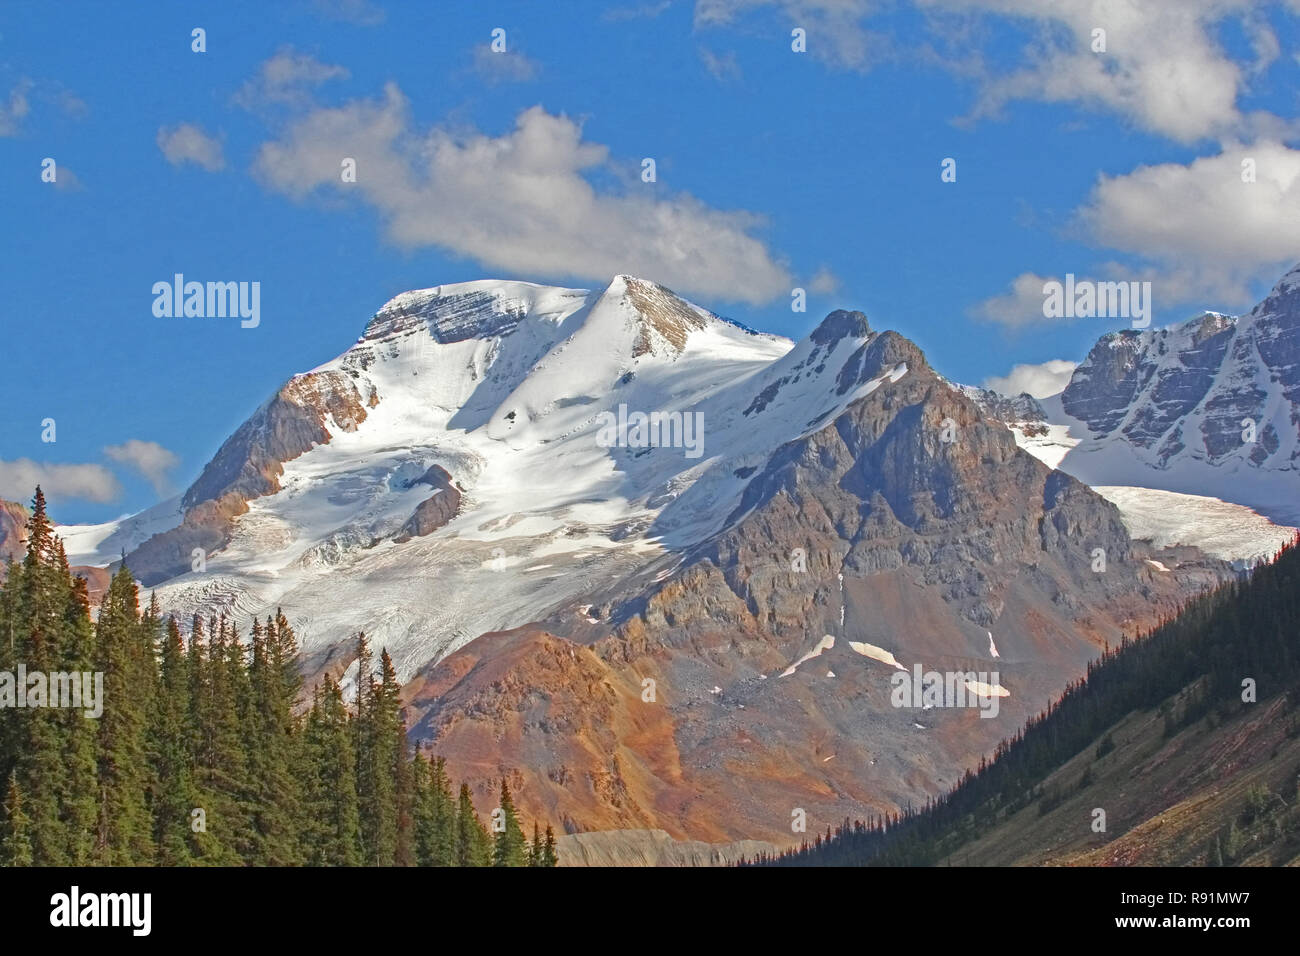 There are many spectacular viewpoints along Icefields Parkway, # 93,  from Banff to Jasper as it winds through the Canadian Rockies. - Stock Image